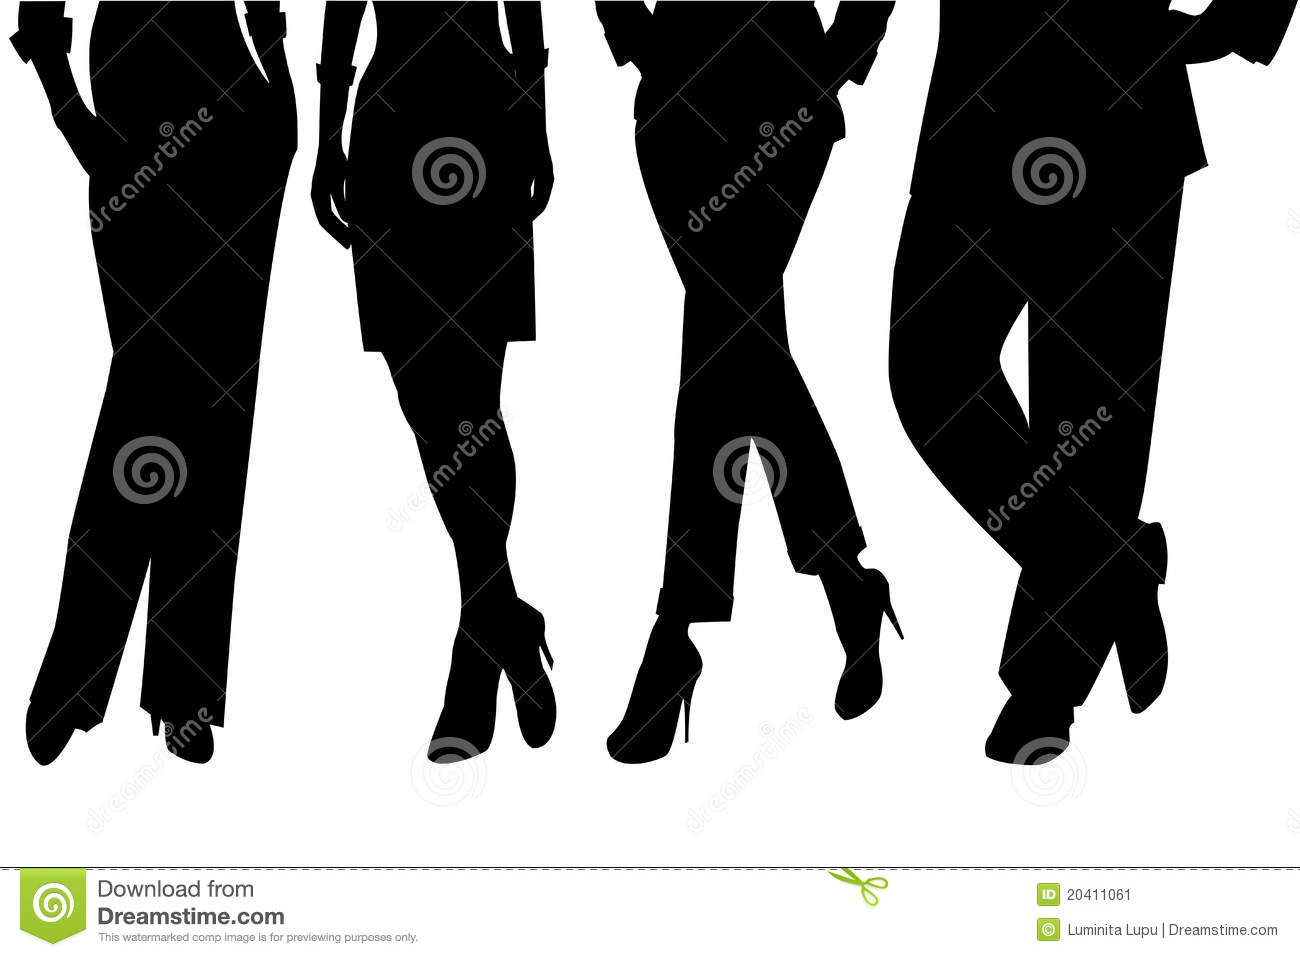 Set Of Legs Silhouettes Stock Image - Image: 20411061